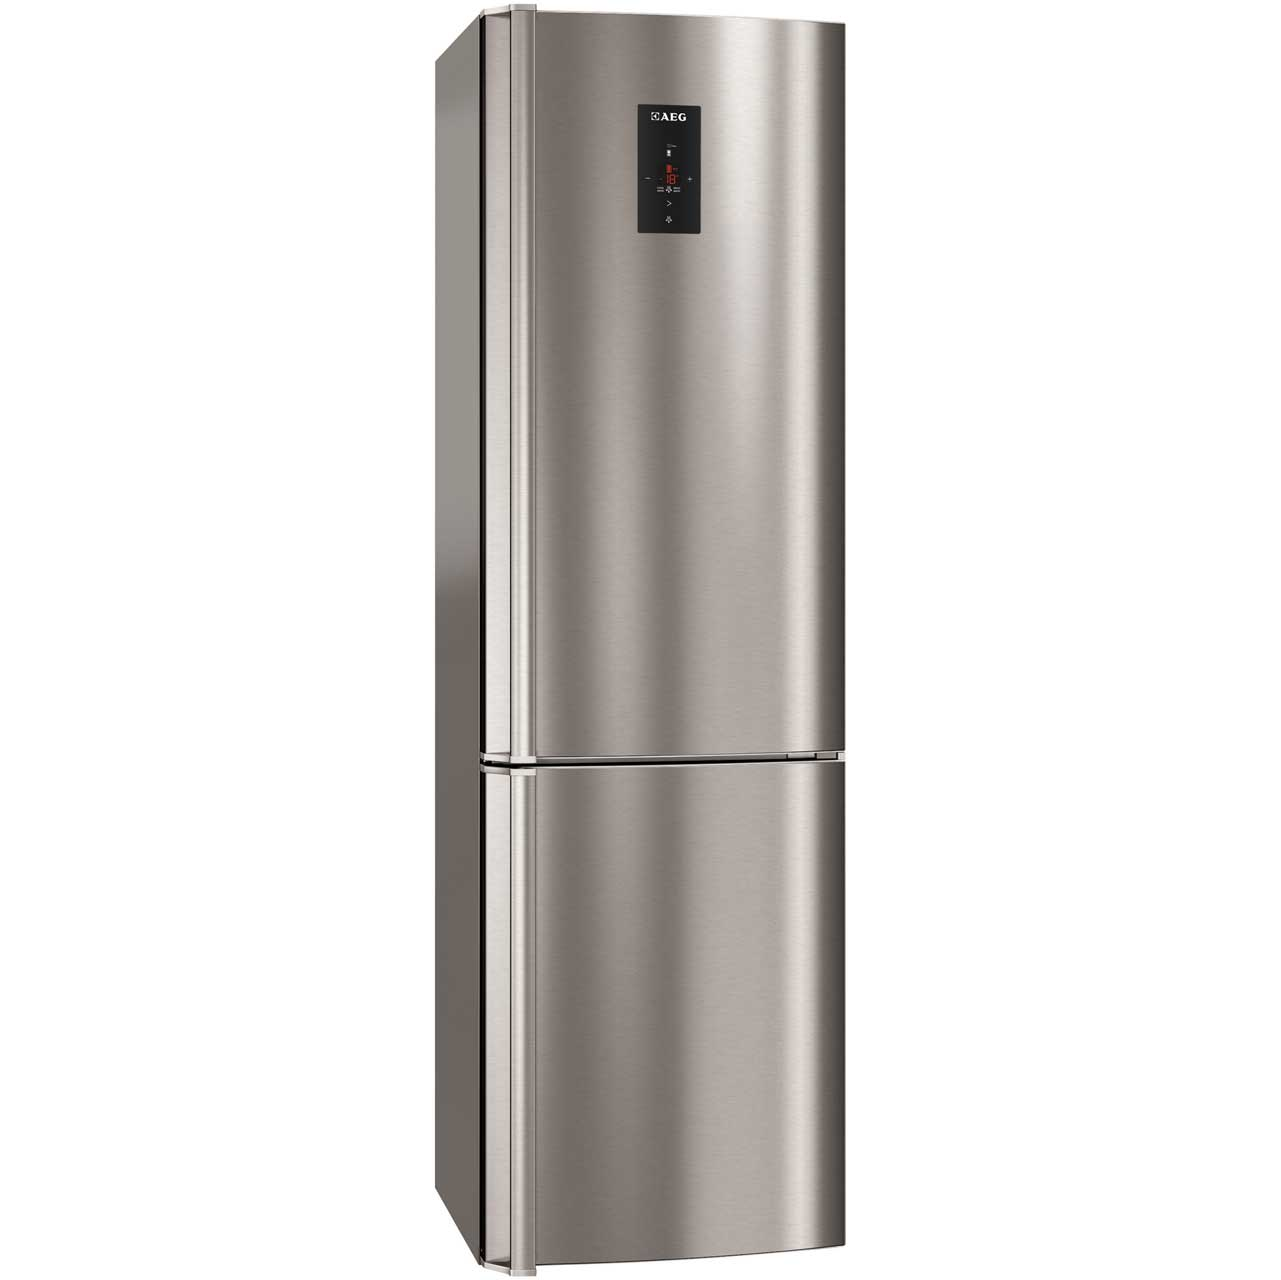 AEG S83920CMX2 Free Standing Fridge Freezer Frost Free in Stainless Steel